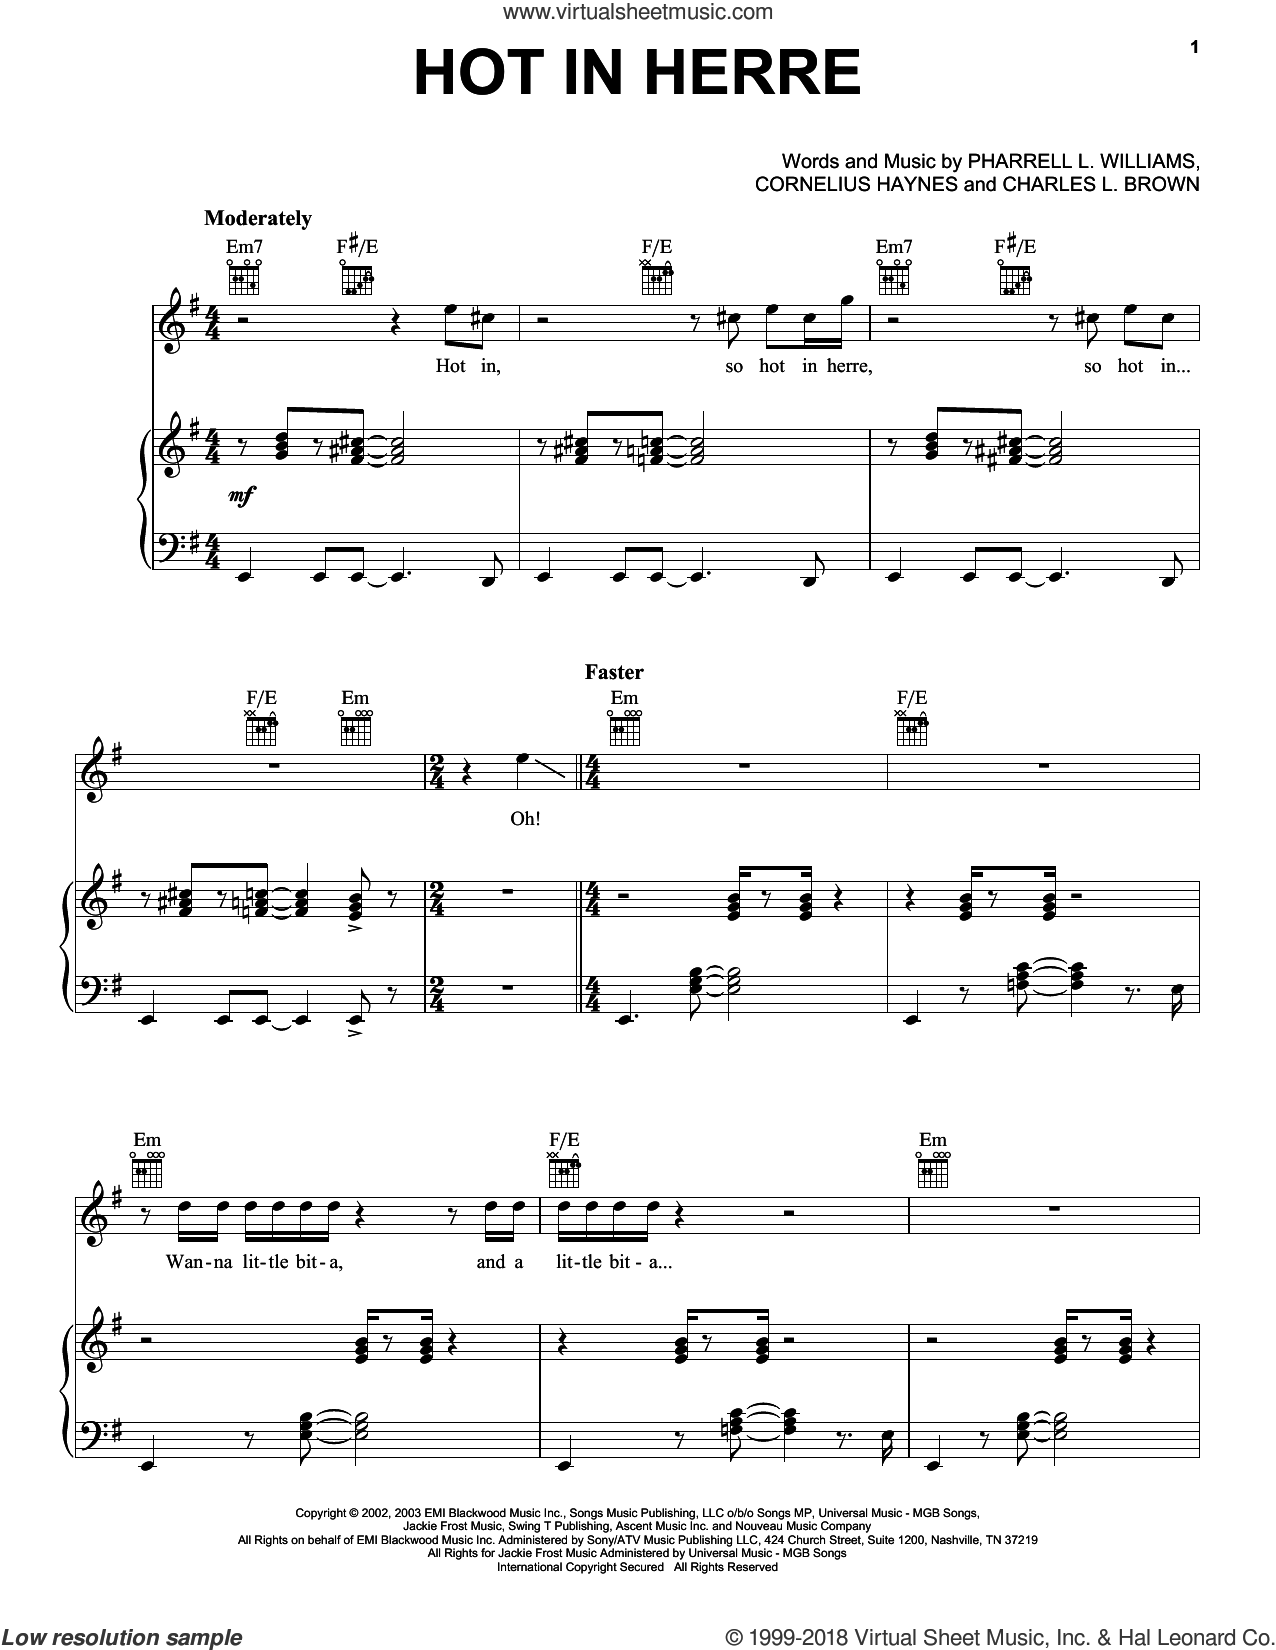 Hot In Herre sheet music for voice, piano or guitar by Nelly, Charles L. Brown, Cornelius Haynes and Pharrell L. Williams, intermediate skill level